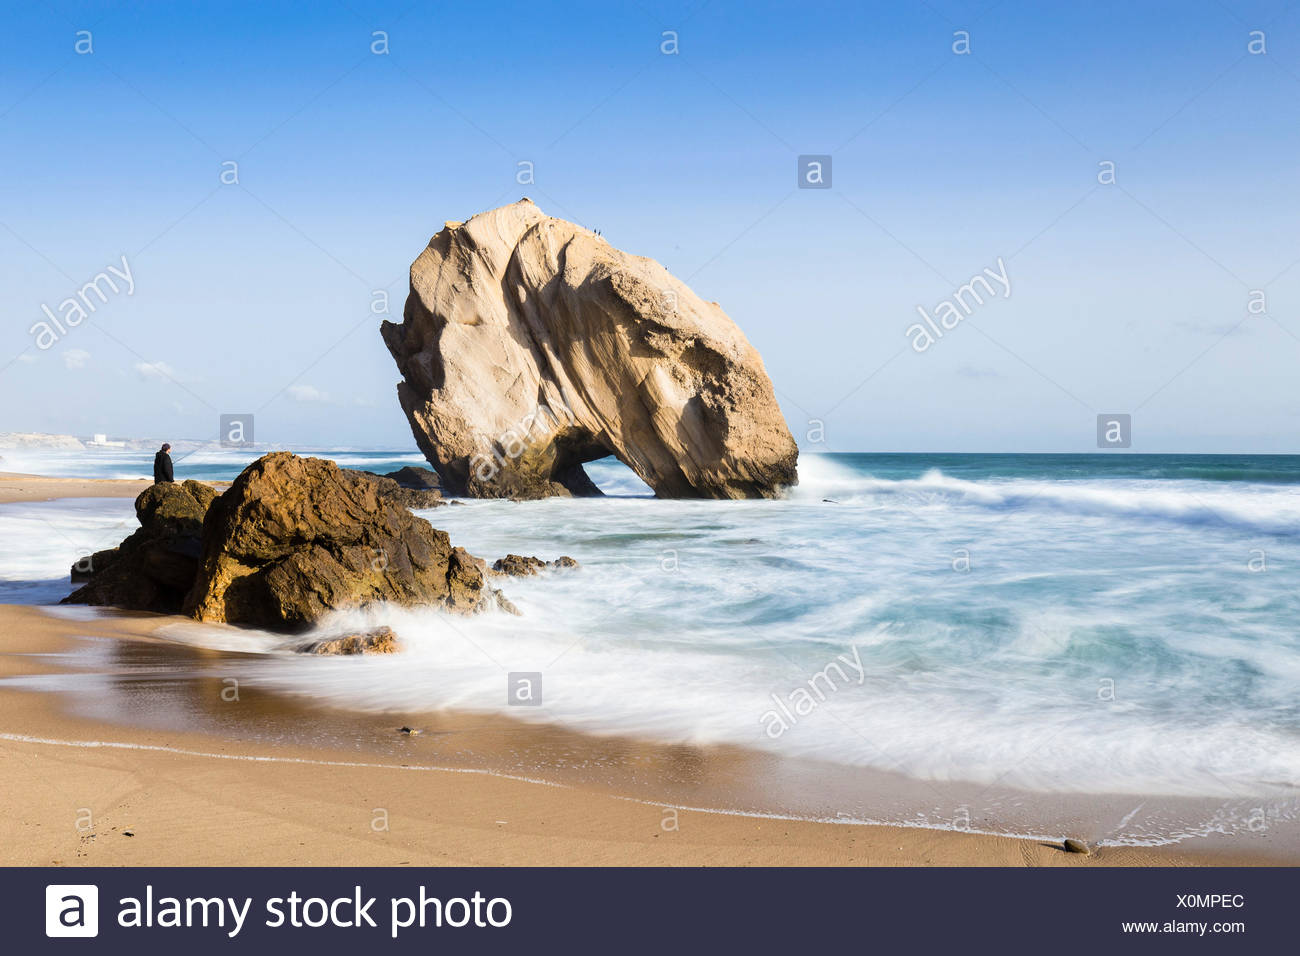 Beach,beach sand,Beauty In Nature,breaking waves,Colour Image,fisherman,Horizon Over Water,Long Exposure,one person,Outdoors,Photography,Portugal,Rock,Rock Formation,Sand,Santa Cruz Beach,Scenics,Sea,Stack,strong currents,Torres Vedras,Tranquil Scene,Trav - Stock Image